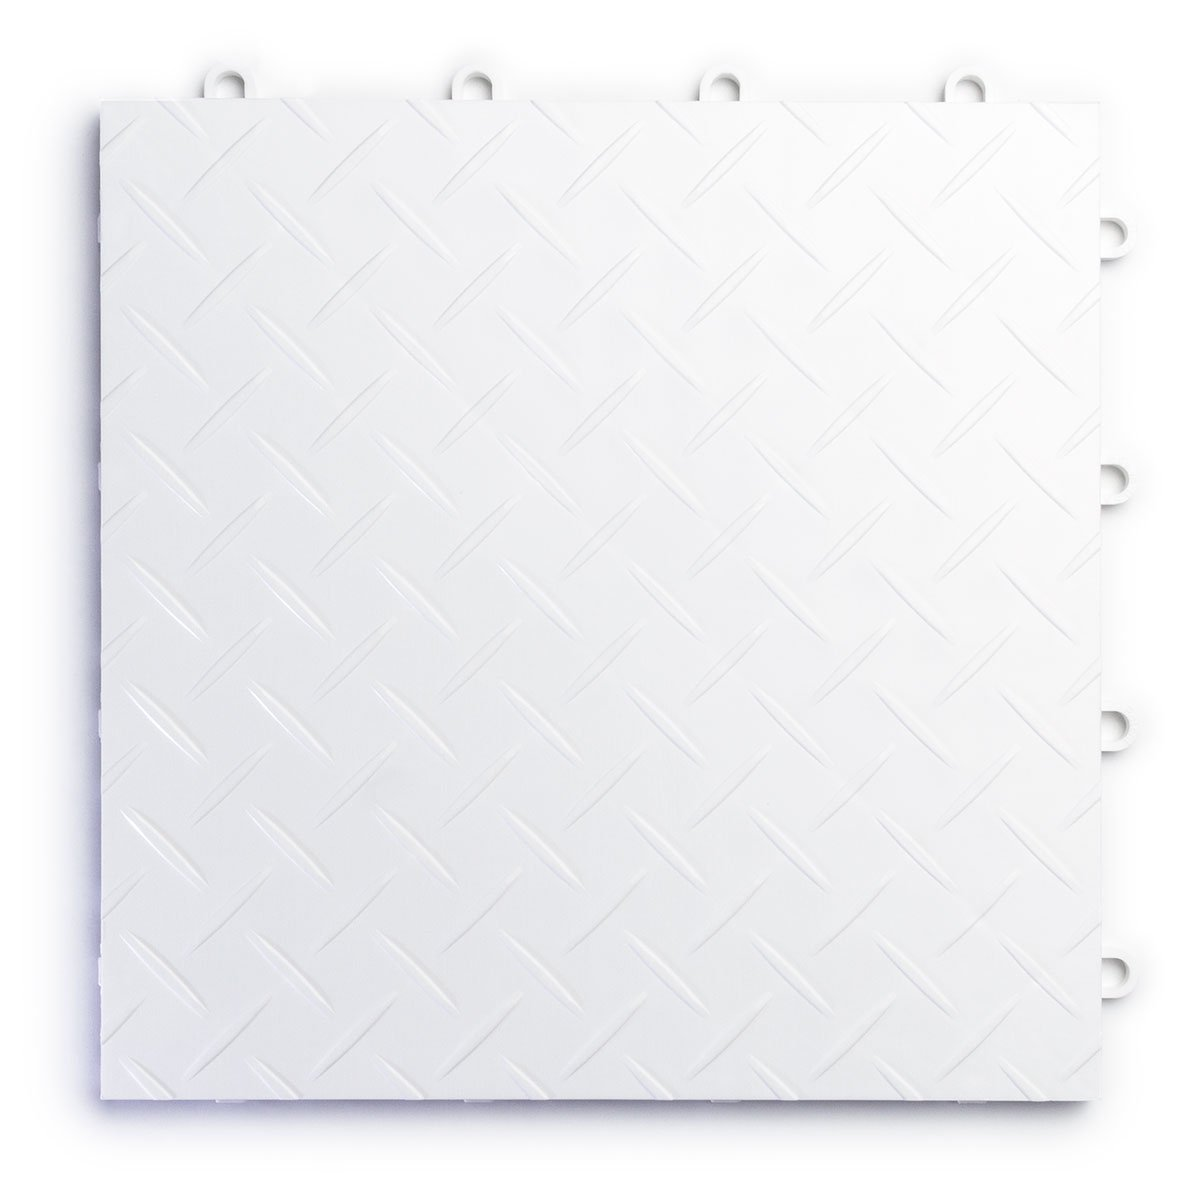 RaceDeck Diamond Plate Design, Durable Interlocking Modular Garage Flooring Tile (12 Pack), White by RaceDeck (Image #1)